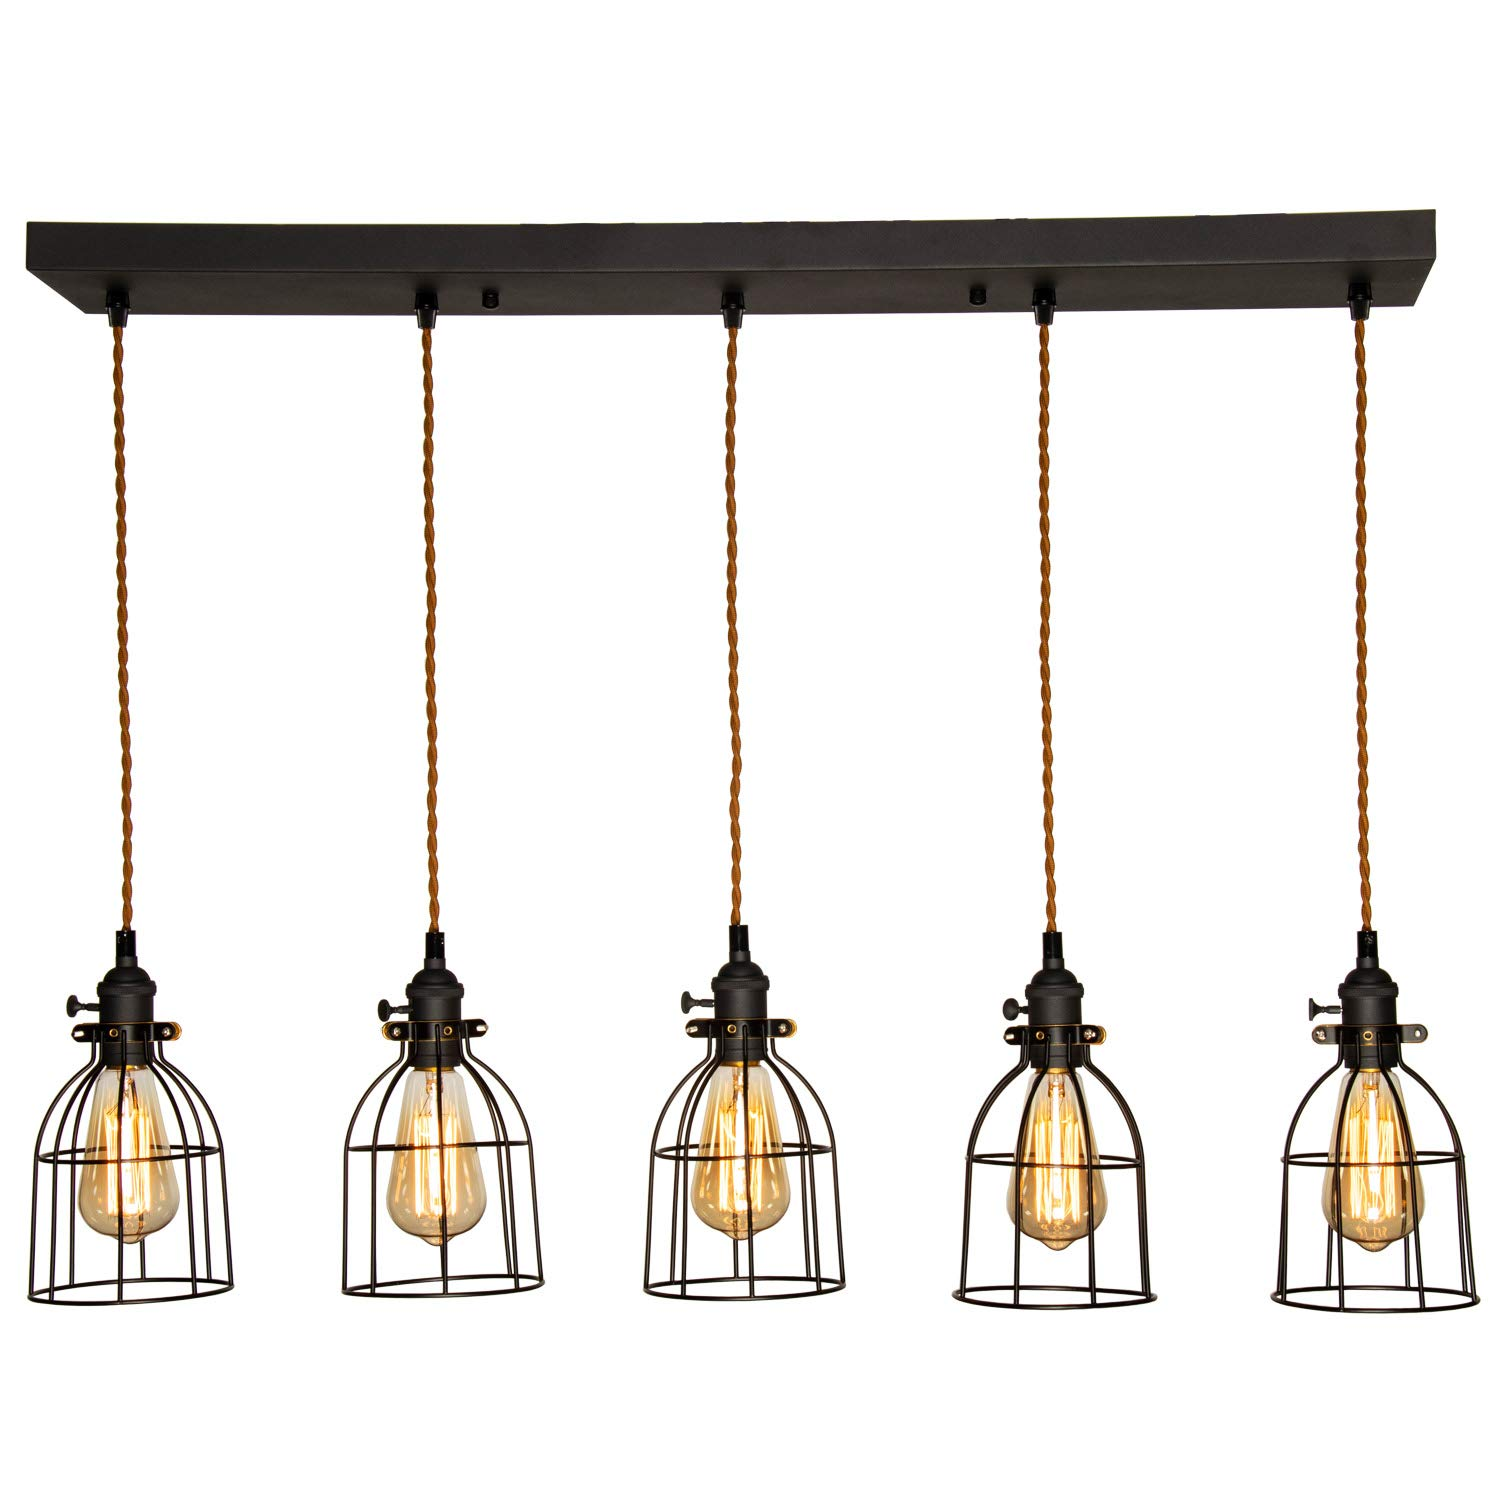 AILIN Farmhouse Rectangular Chandelier 5-Light, Indoor Home Pendant Lighting Fixture, Metal Vintage Caged Kitchen Island Lights, Antique Black Edison E26 Ceiling Lights